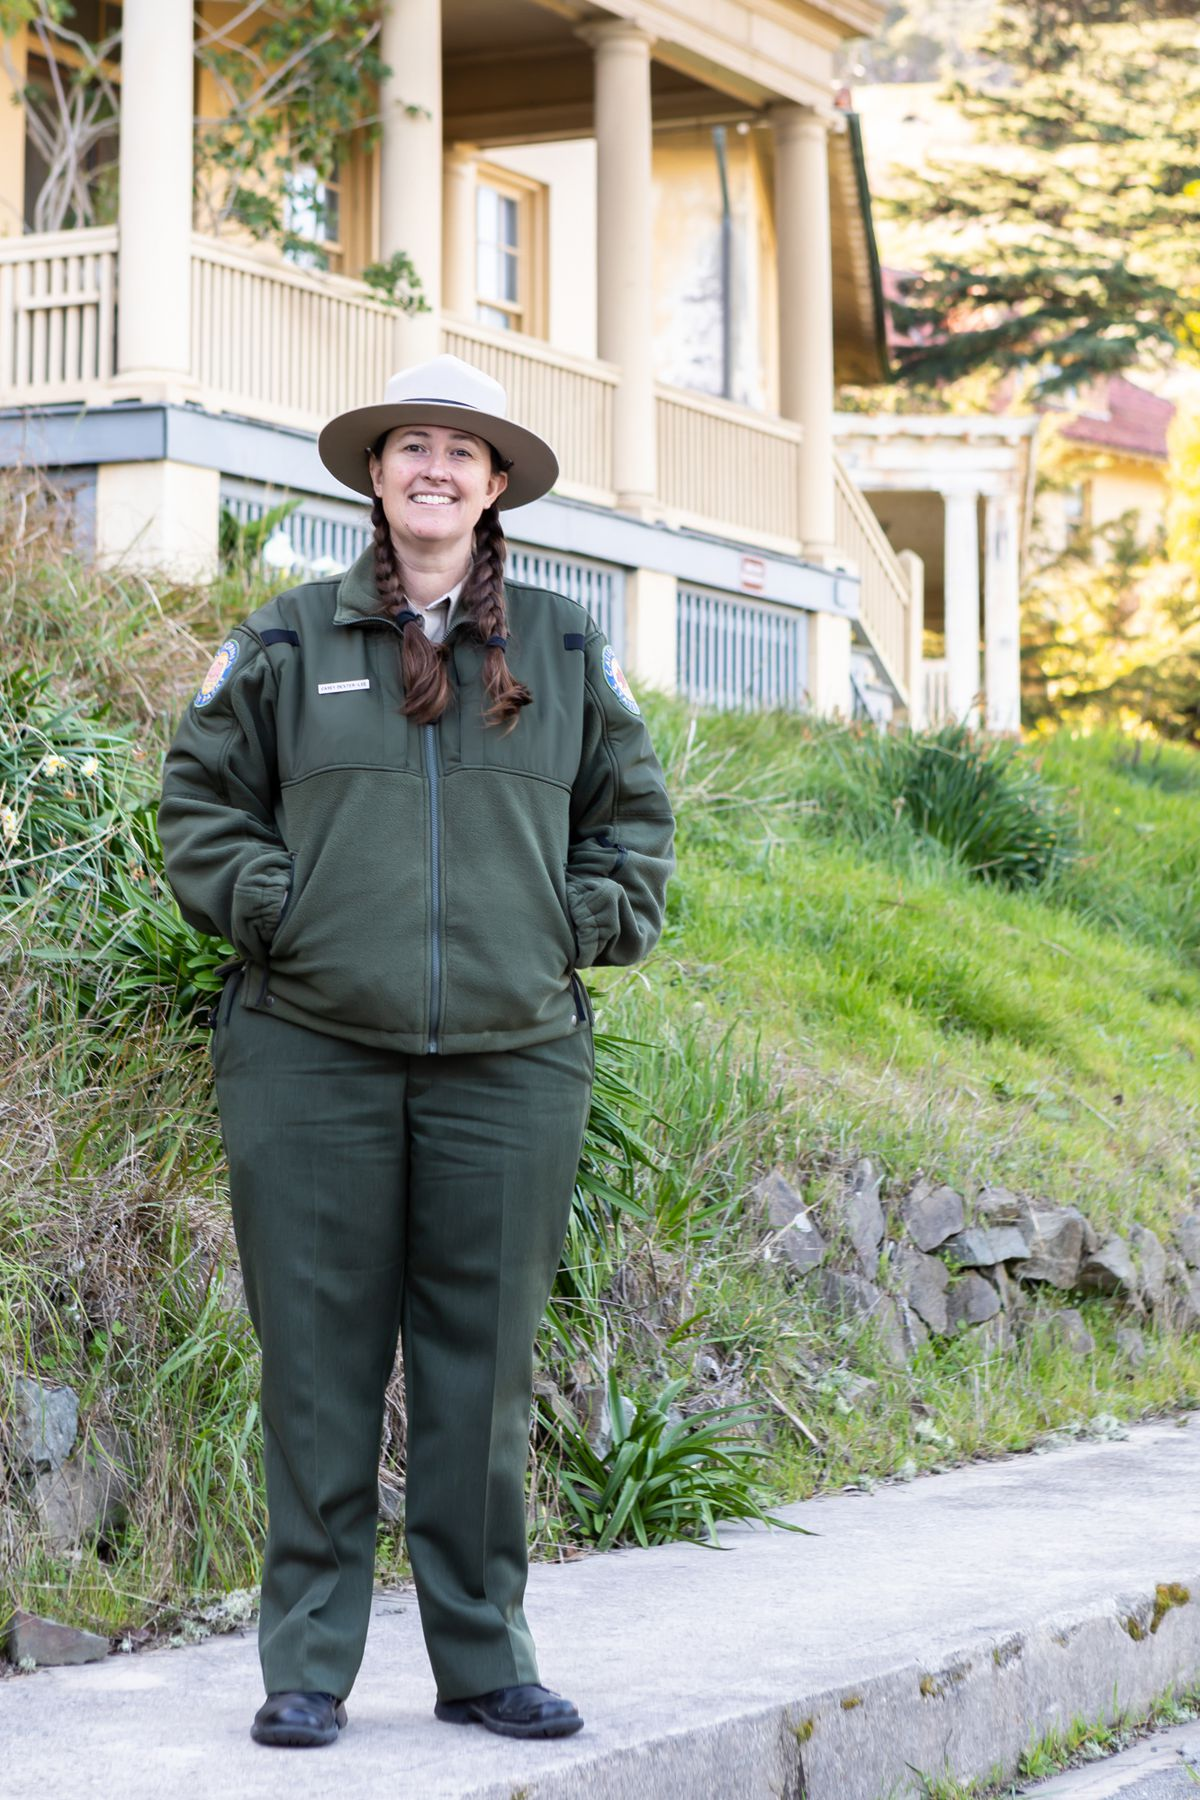 A woman with long braids. She's dressed in official ranger garb.